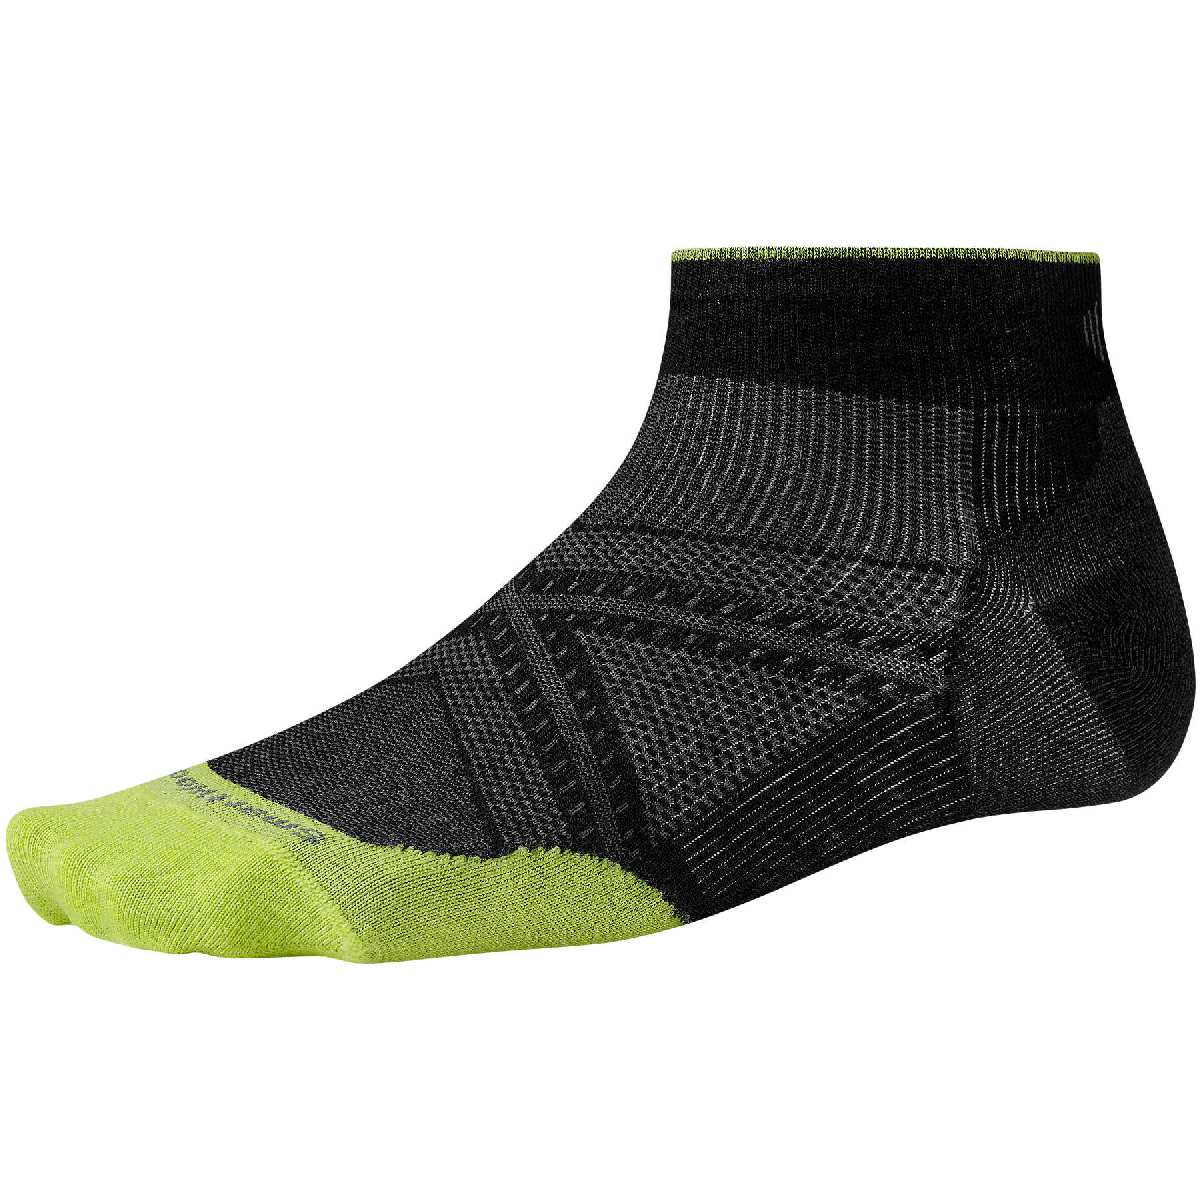 SmartWool PhD Ultra Light Low Cut Running Sock Size XL Black U.S.A. & Canada